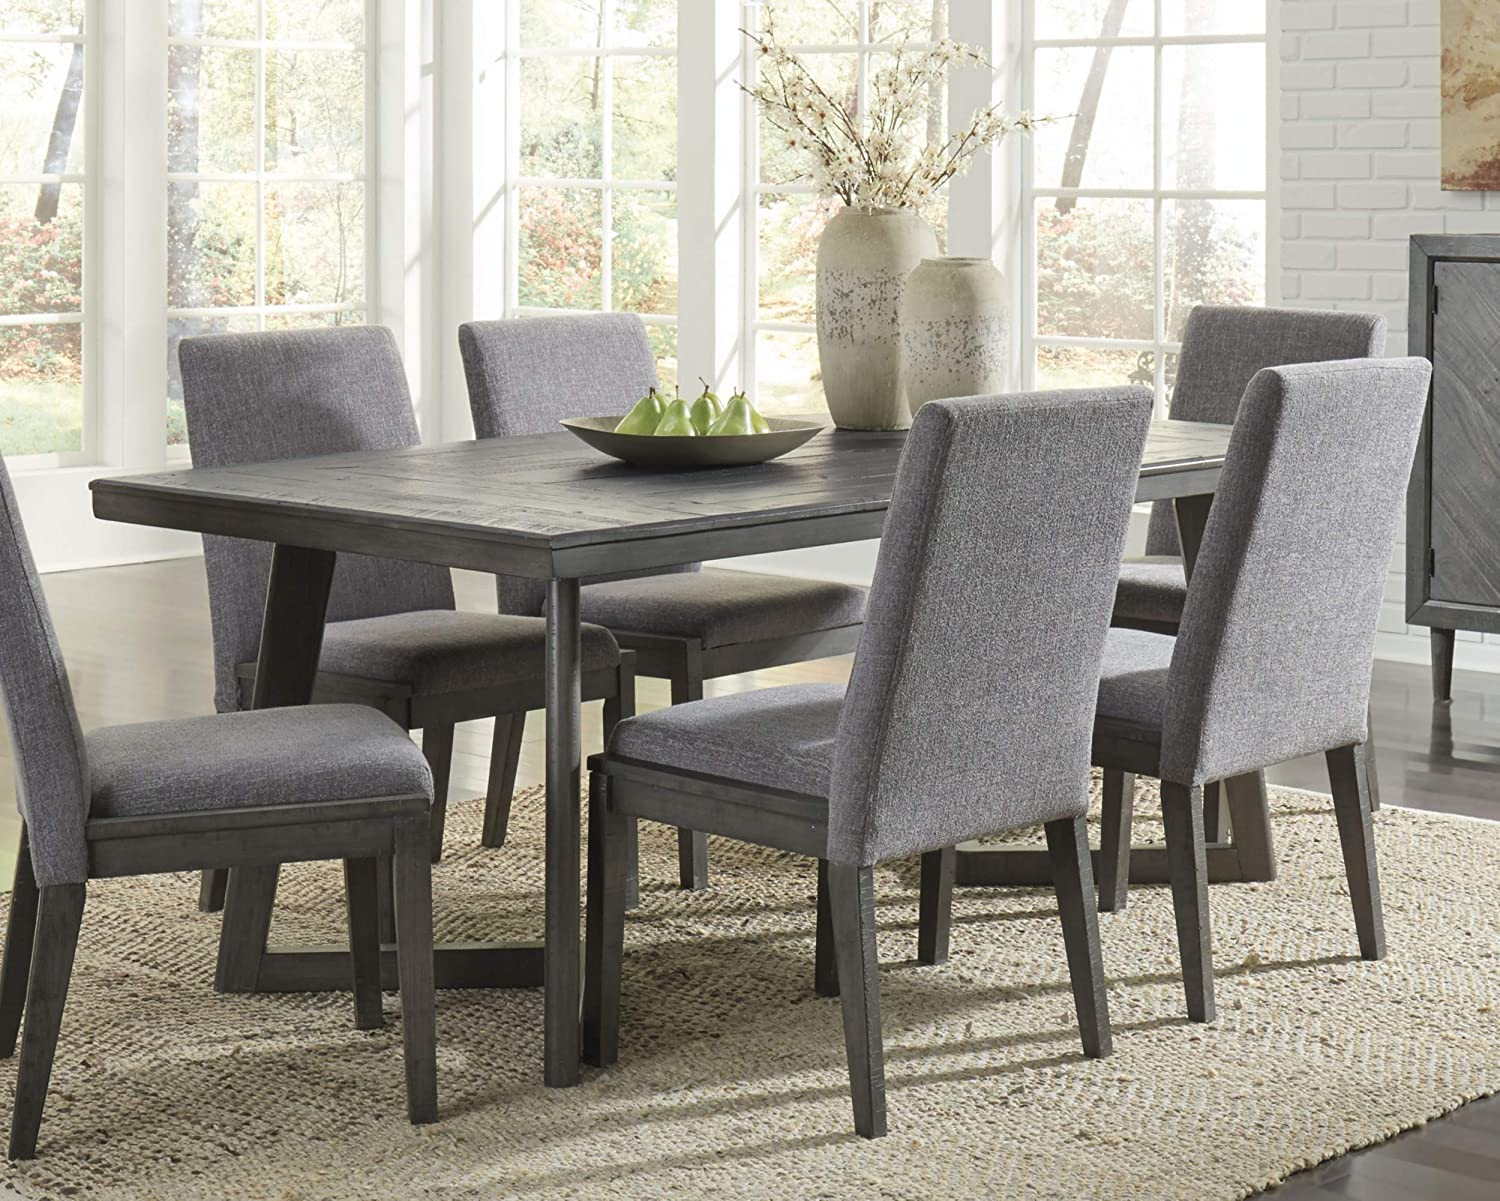 24 Elegant Dining Room Sets for Your Inspiration | Home ...